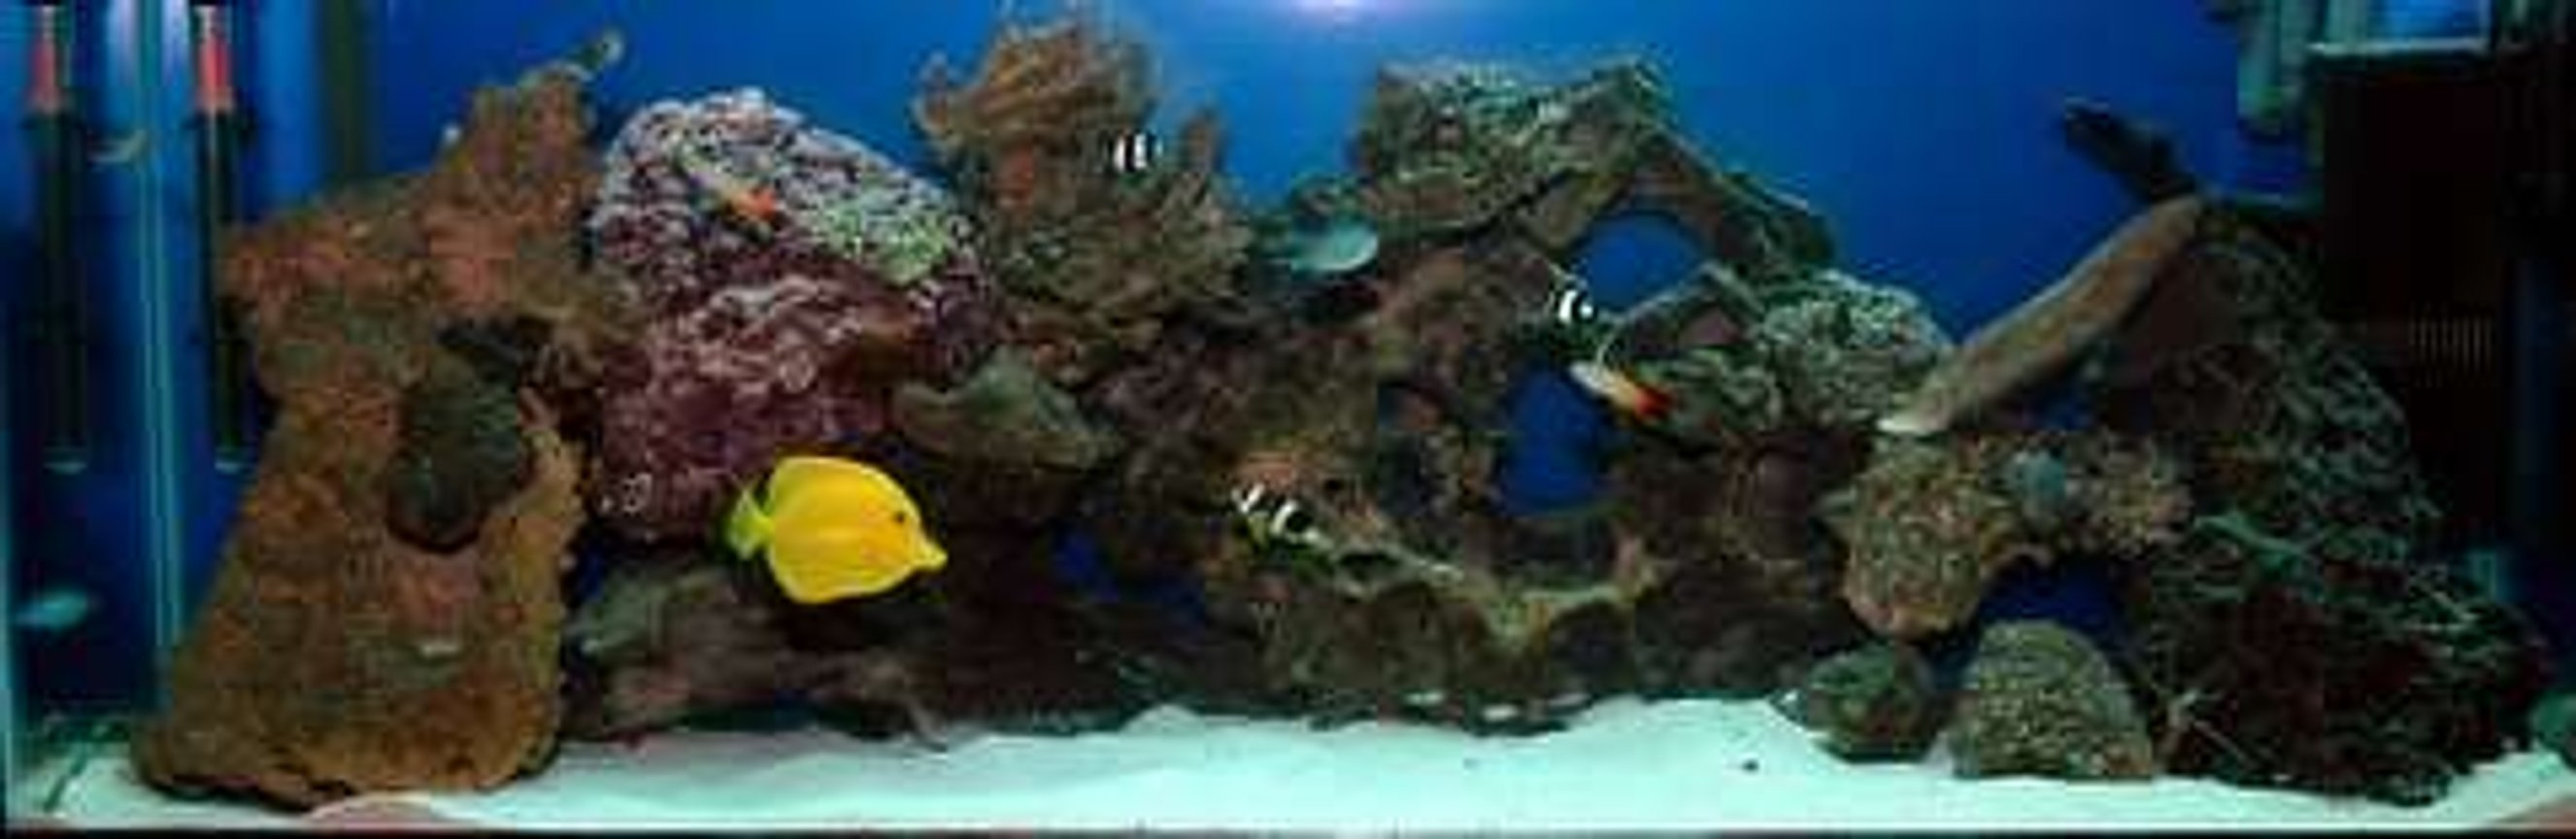 55 gallons saltwater fish tank (mostly fish, little/no live coral) - still going